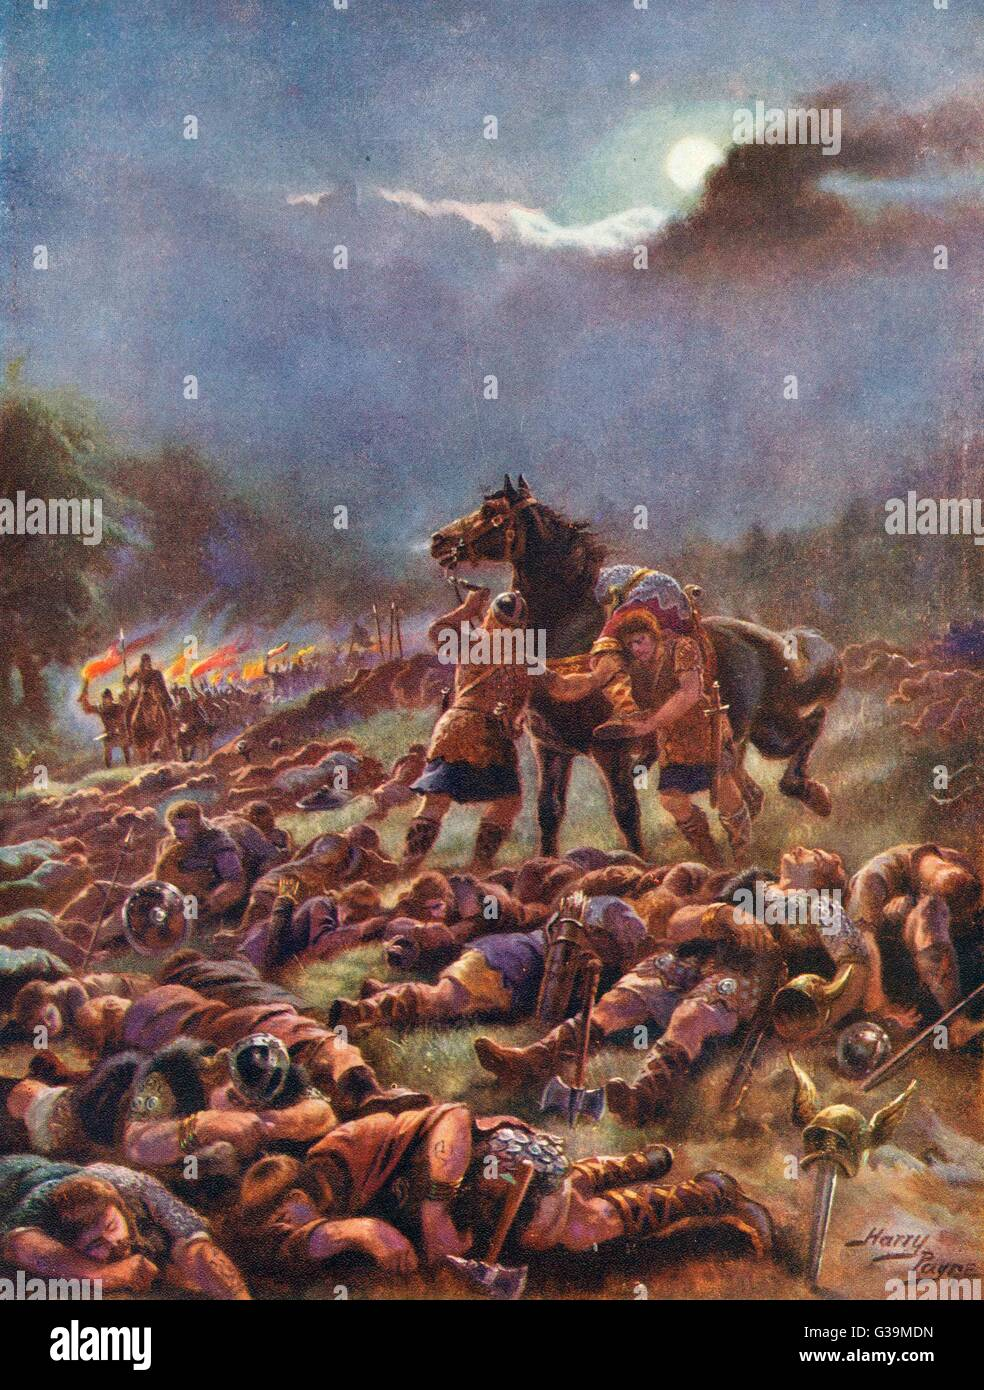 The Scots drug and then attack  their Viking invaders.  The  Viking leader Sweyn of Norway, however, escapes thanks - Stock Image